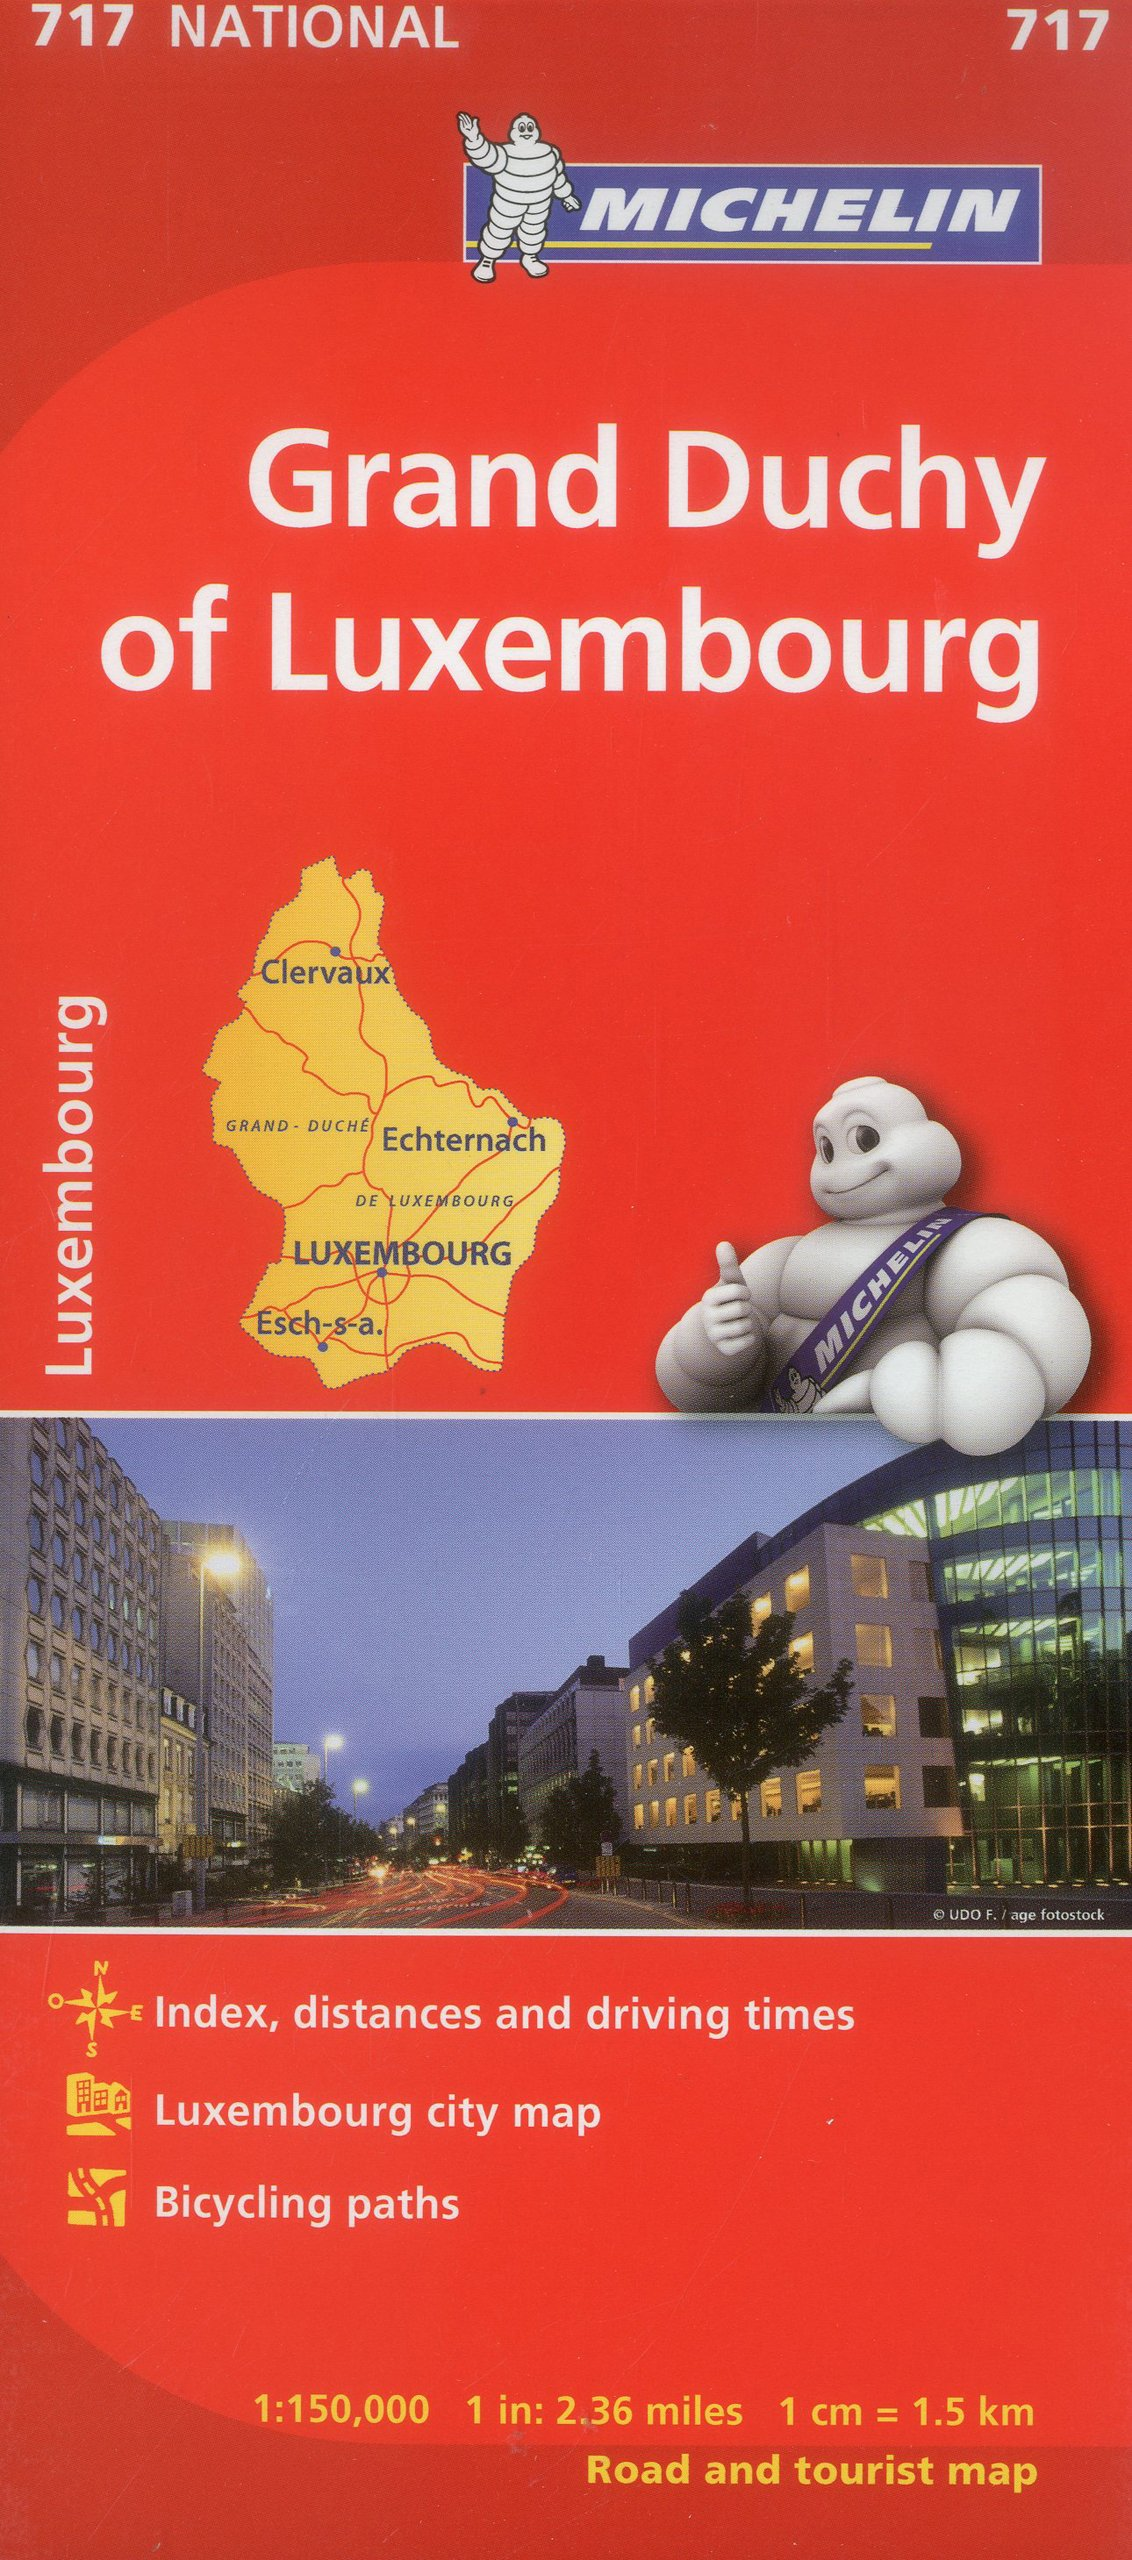 Michelin Luxembourg, Grand Duchy Map 717 (Maps/Country (Michelin)) Map – Folded Map, October 15, 2017 2067170767 Europe - General Travel / Europe Europe - Western